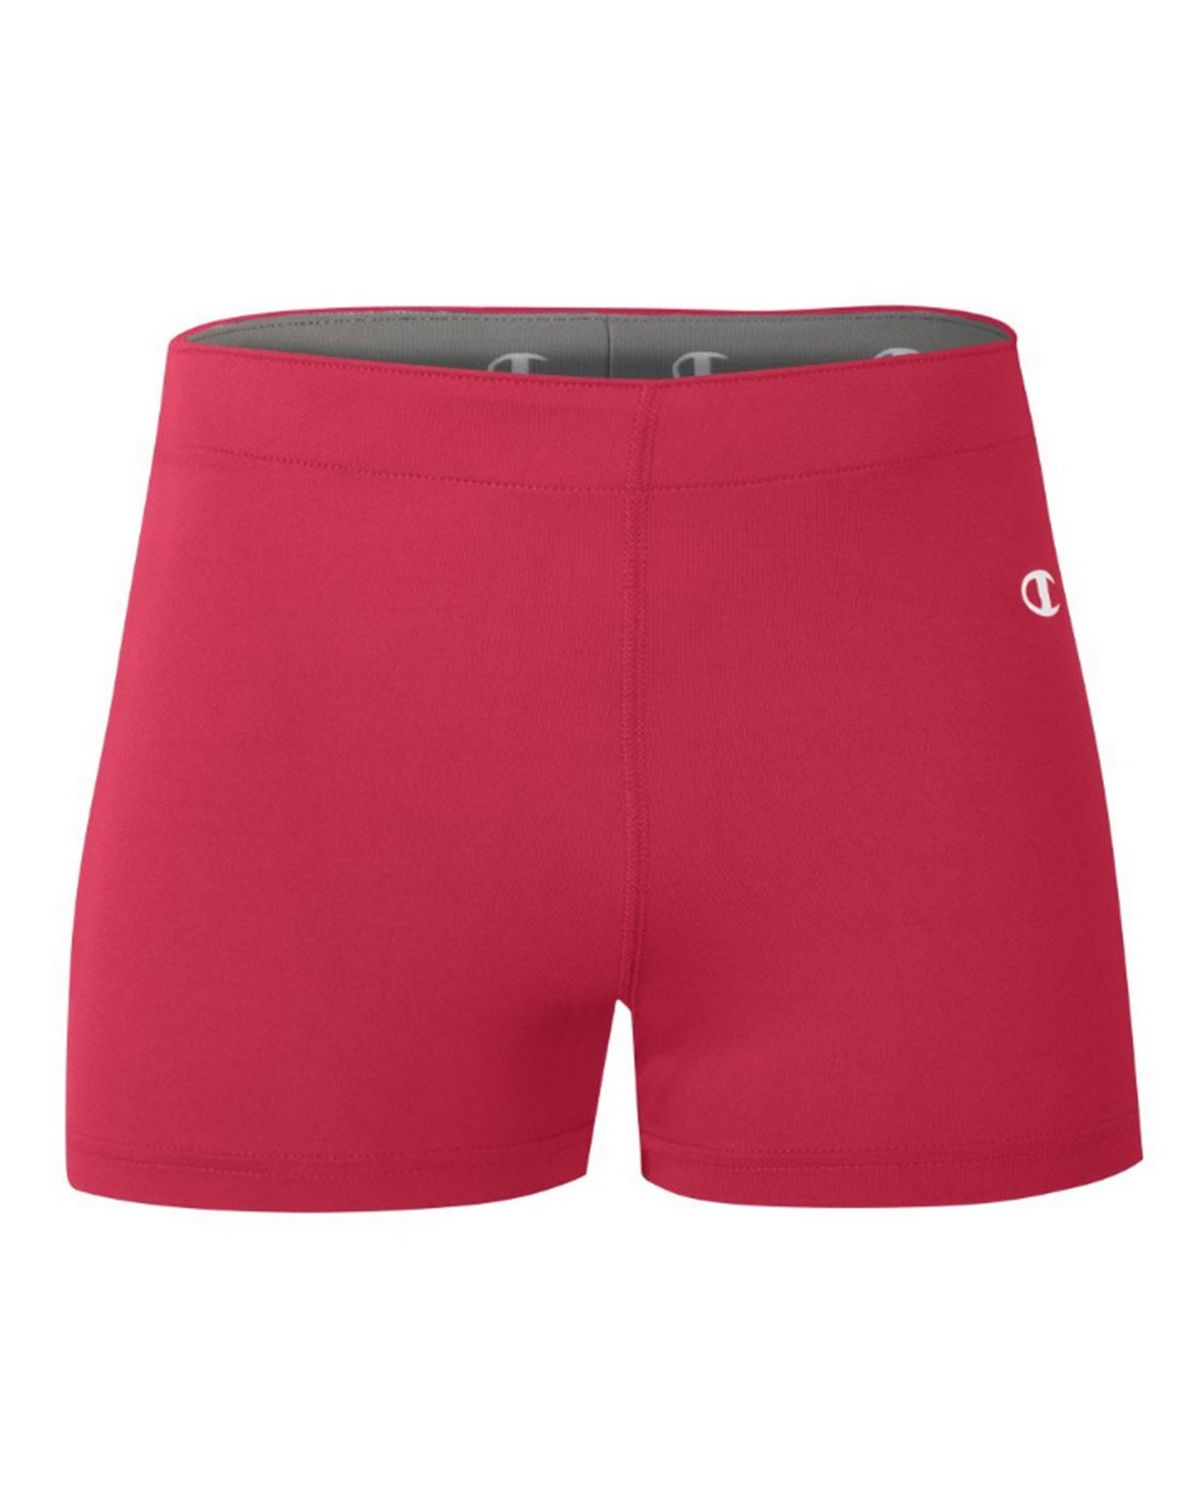 Champion T761 Womens Compression Short - Scarlet - XS T761